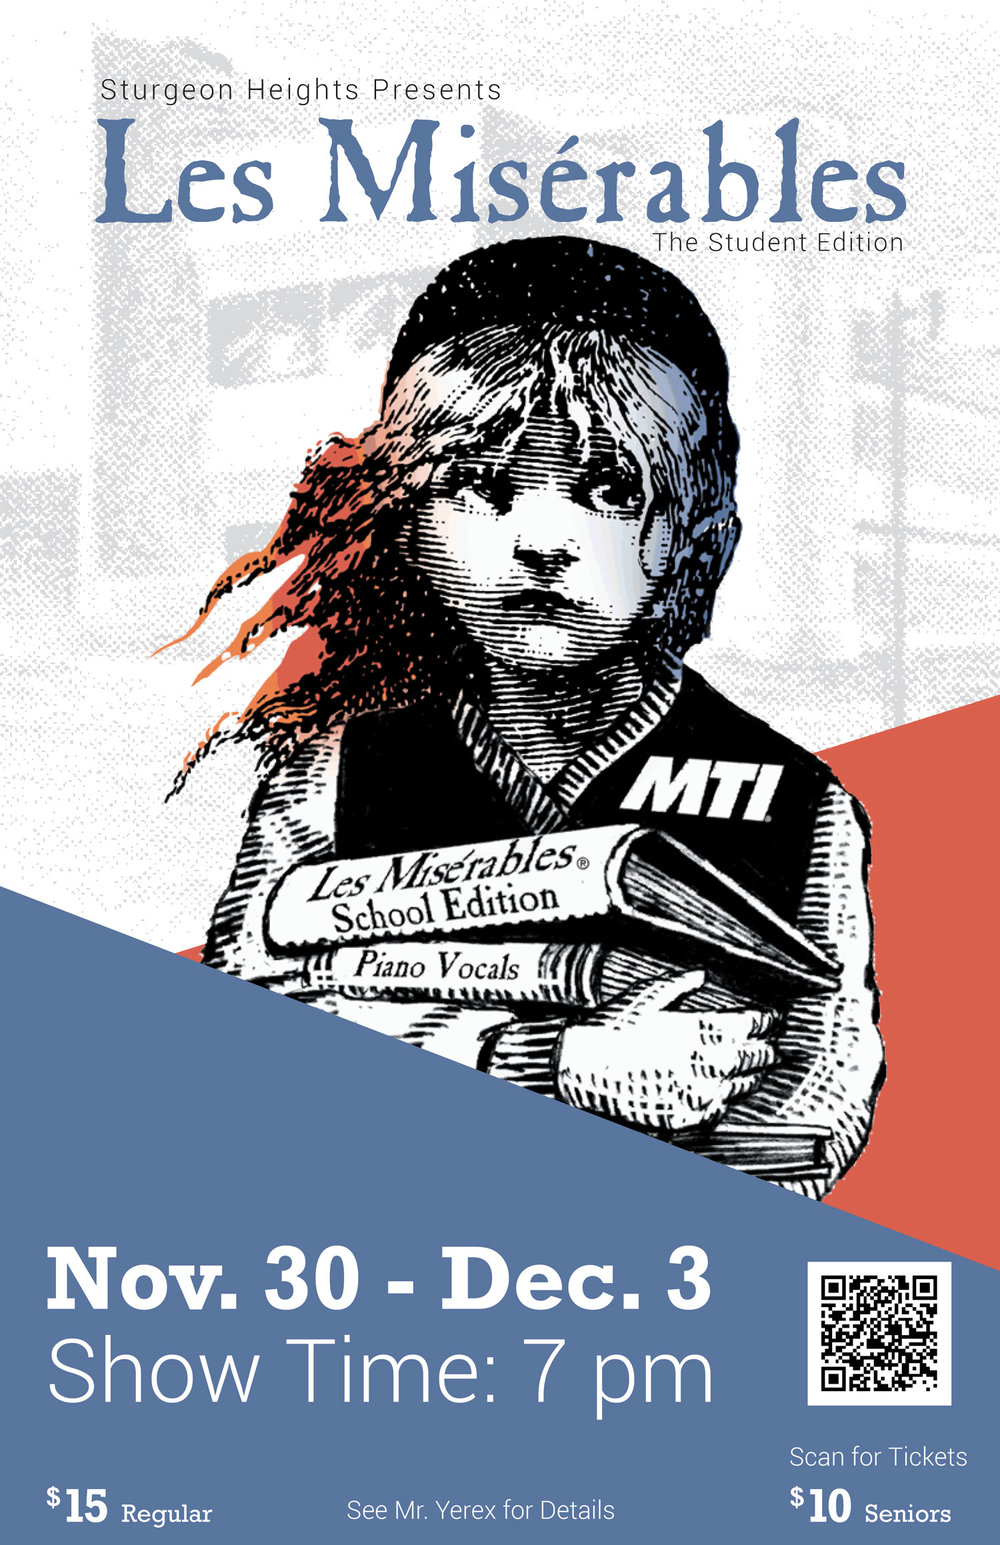 Les Misérables - School Edition performed by Sturgeon Heights Collegiate, Winnipeg